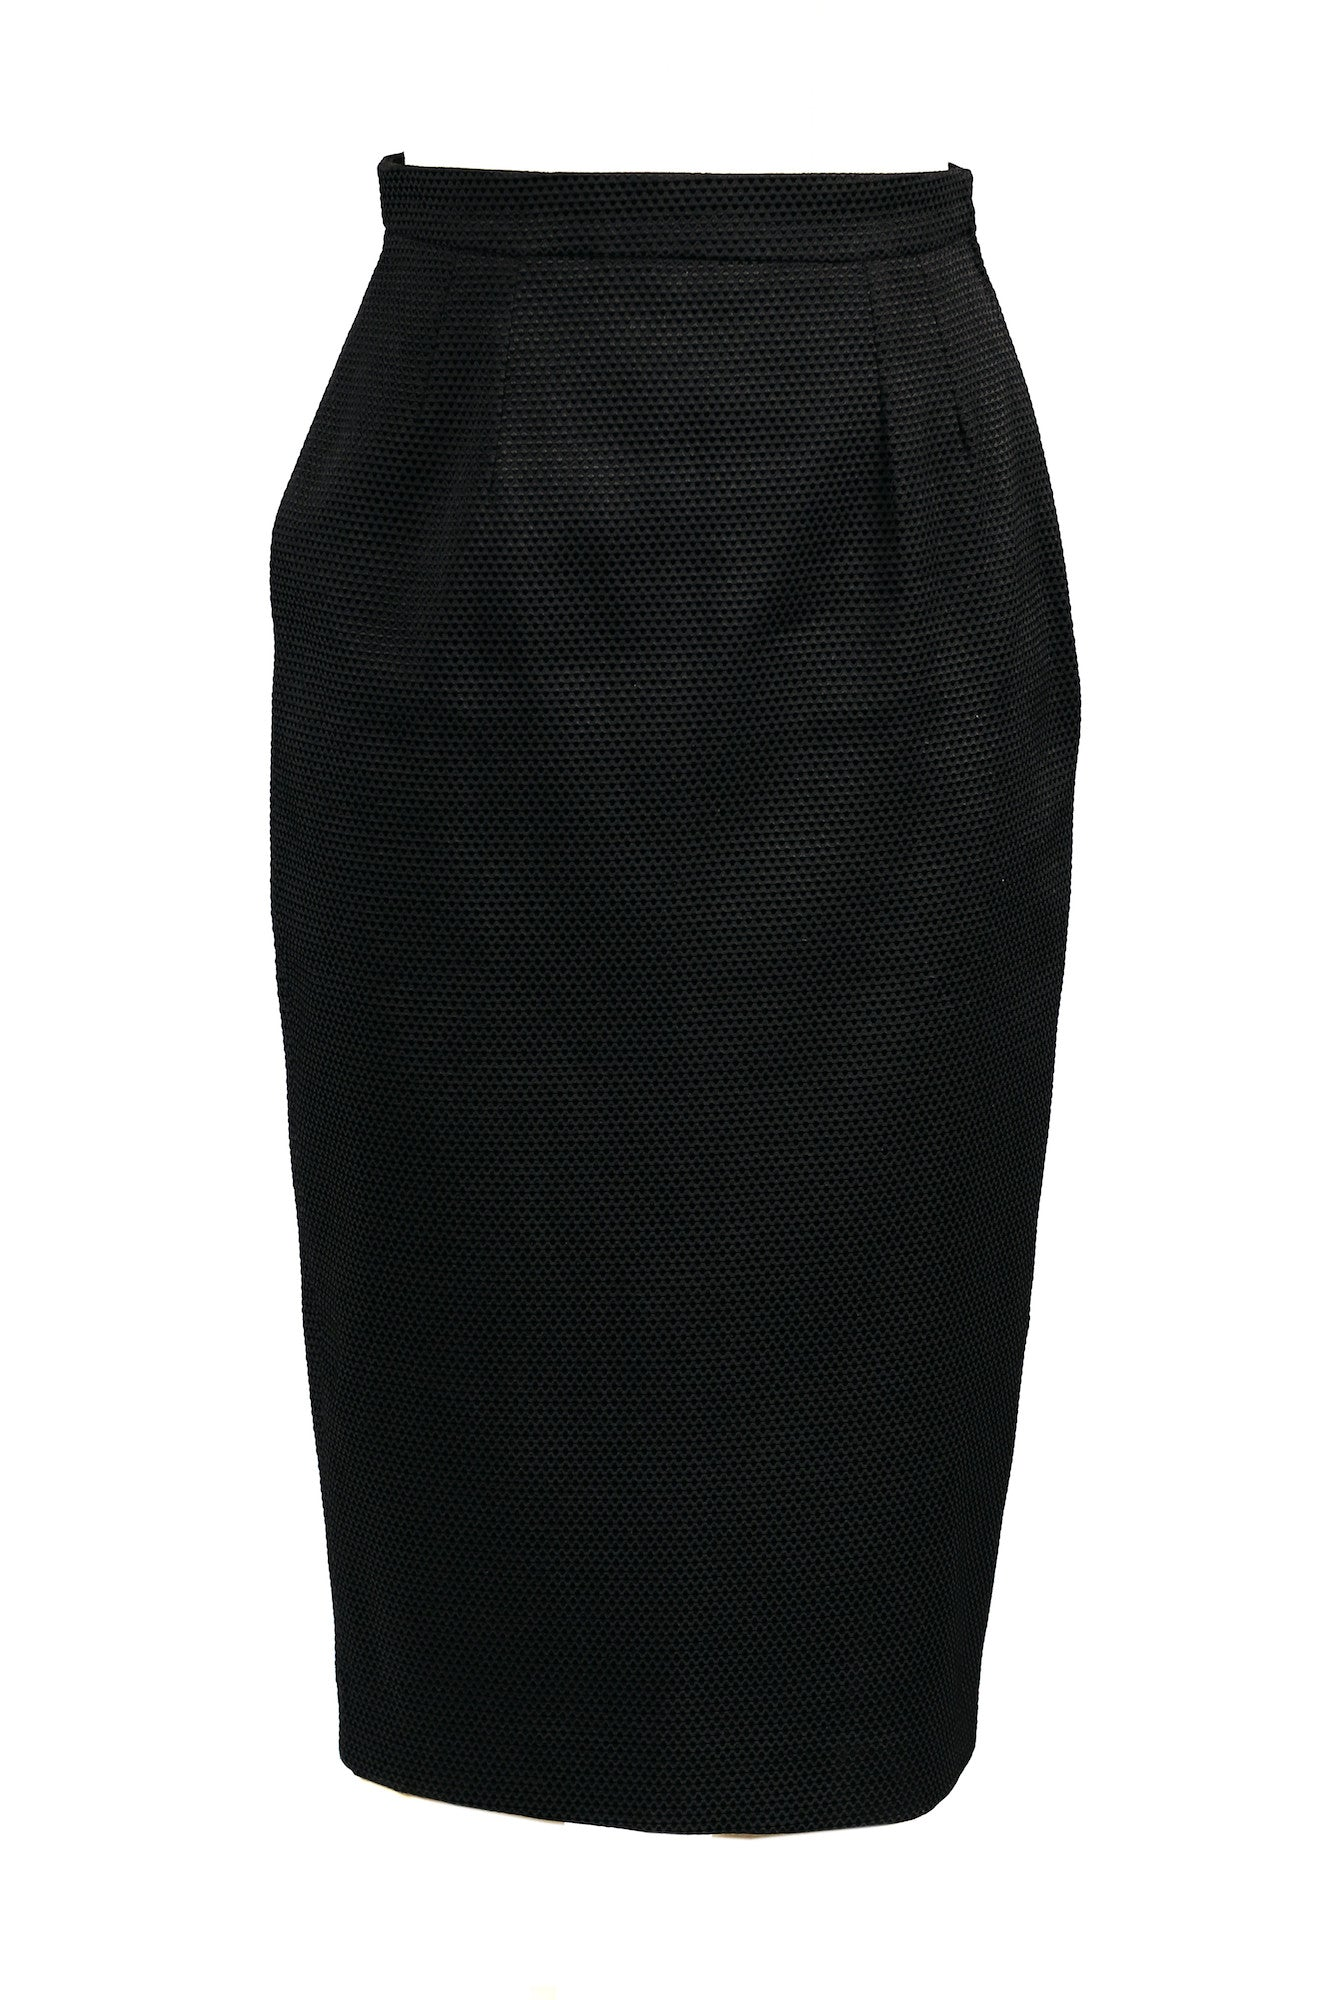 Textured High-waisted Pencil Skirt for All Seasons - Steve Guthrie - 5